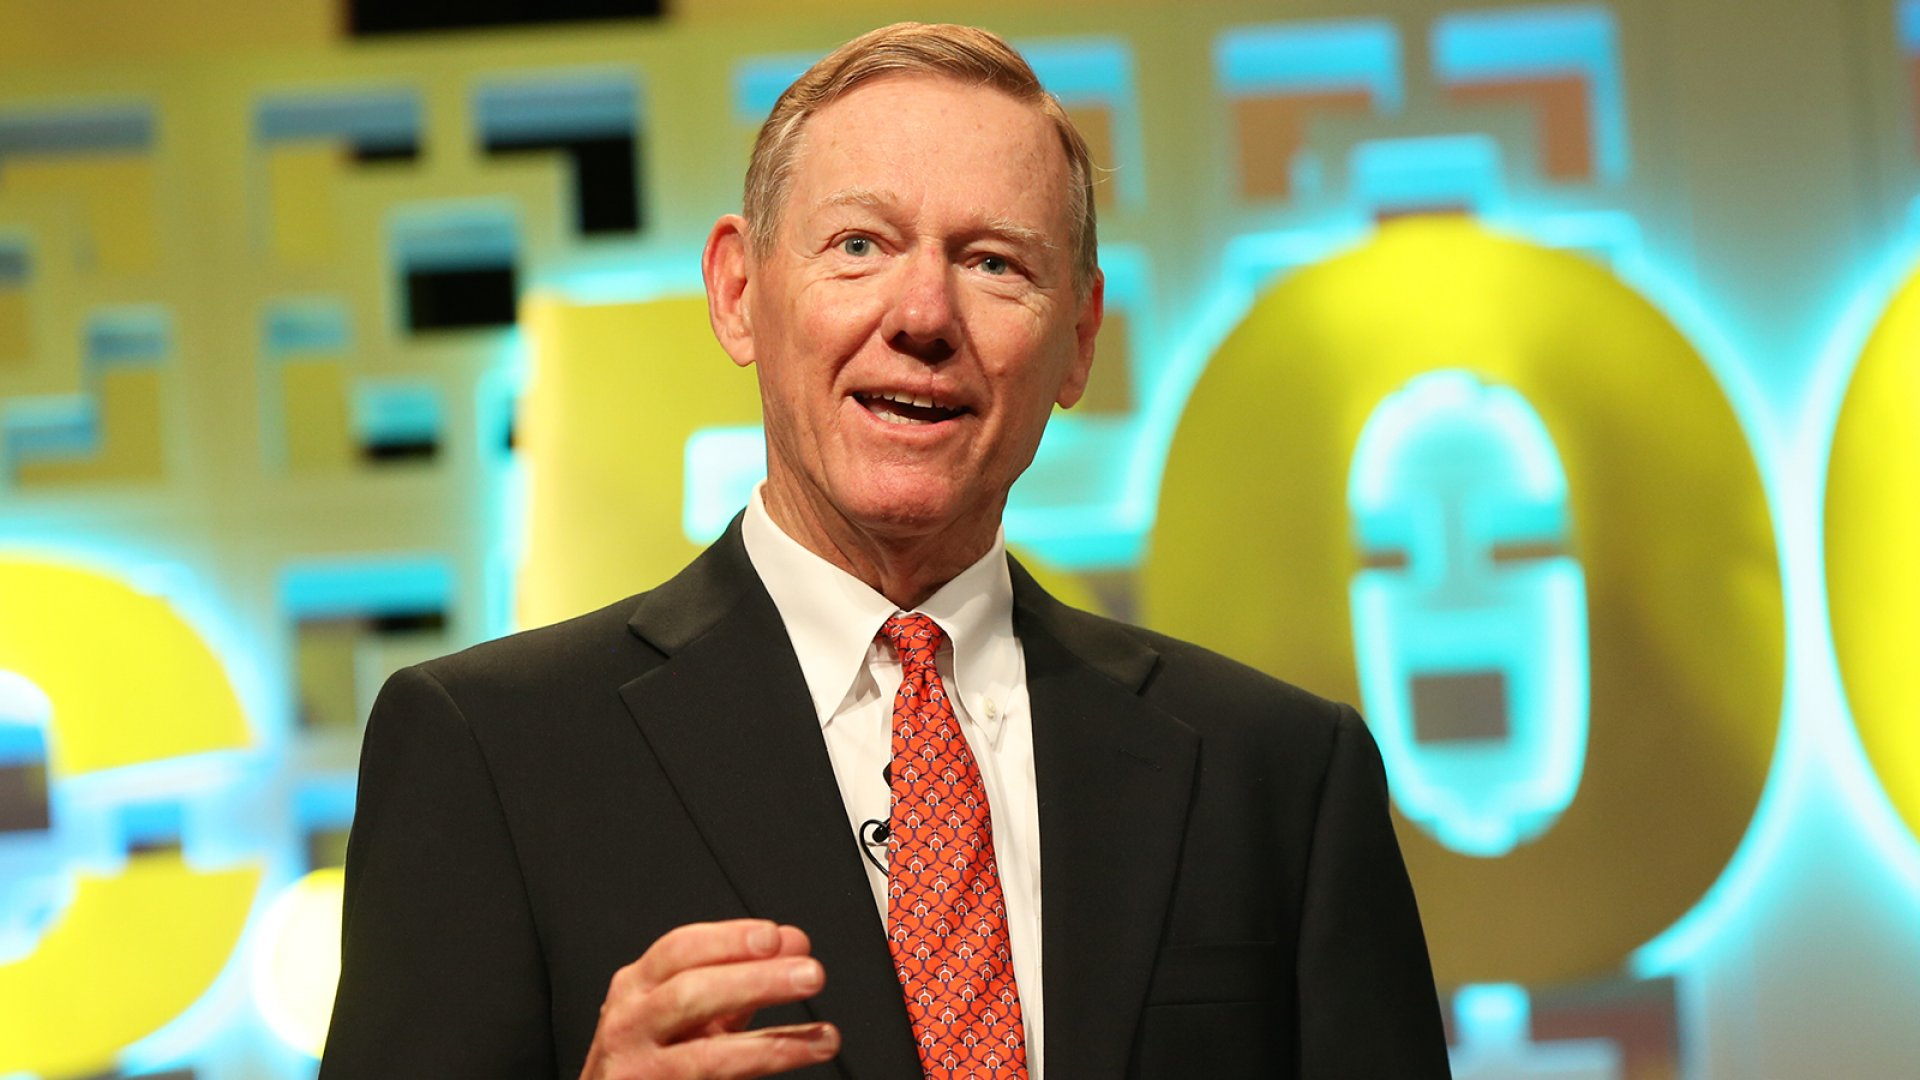 Former Ford CEO Alan Mulally speaking at the Inc. 5000 Conference.